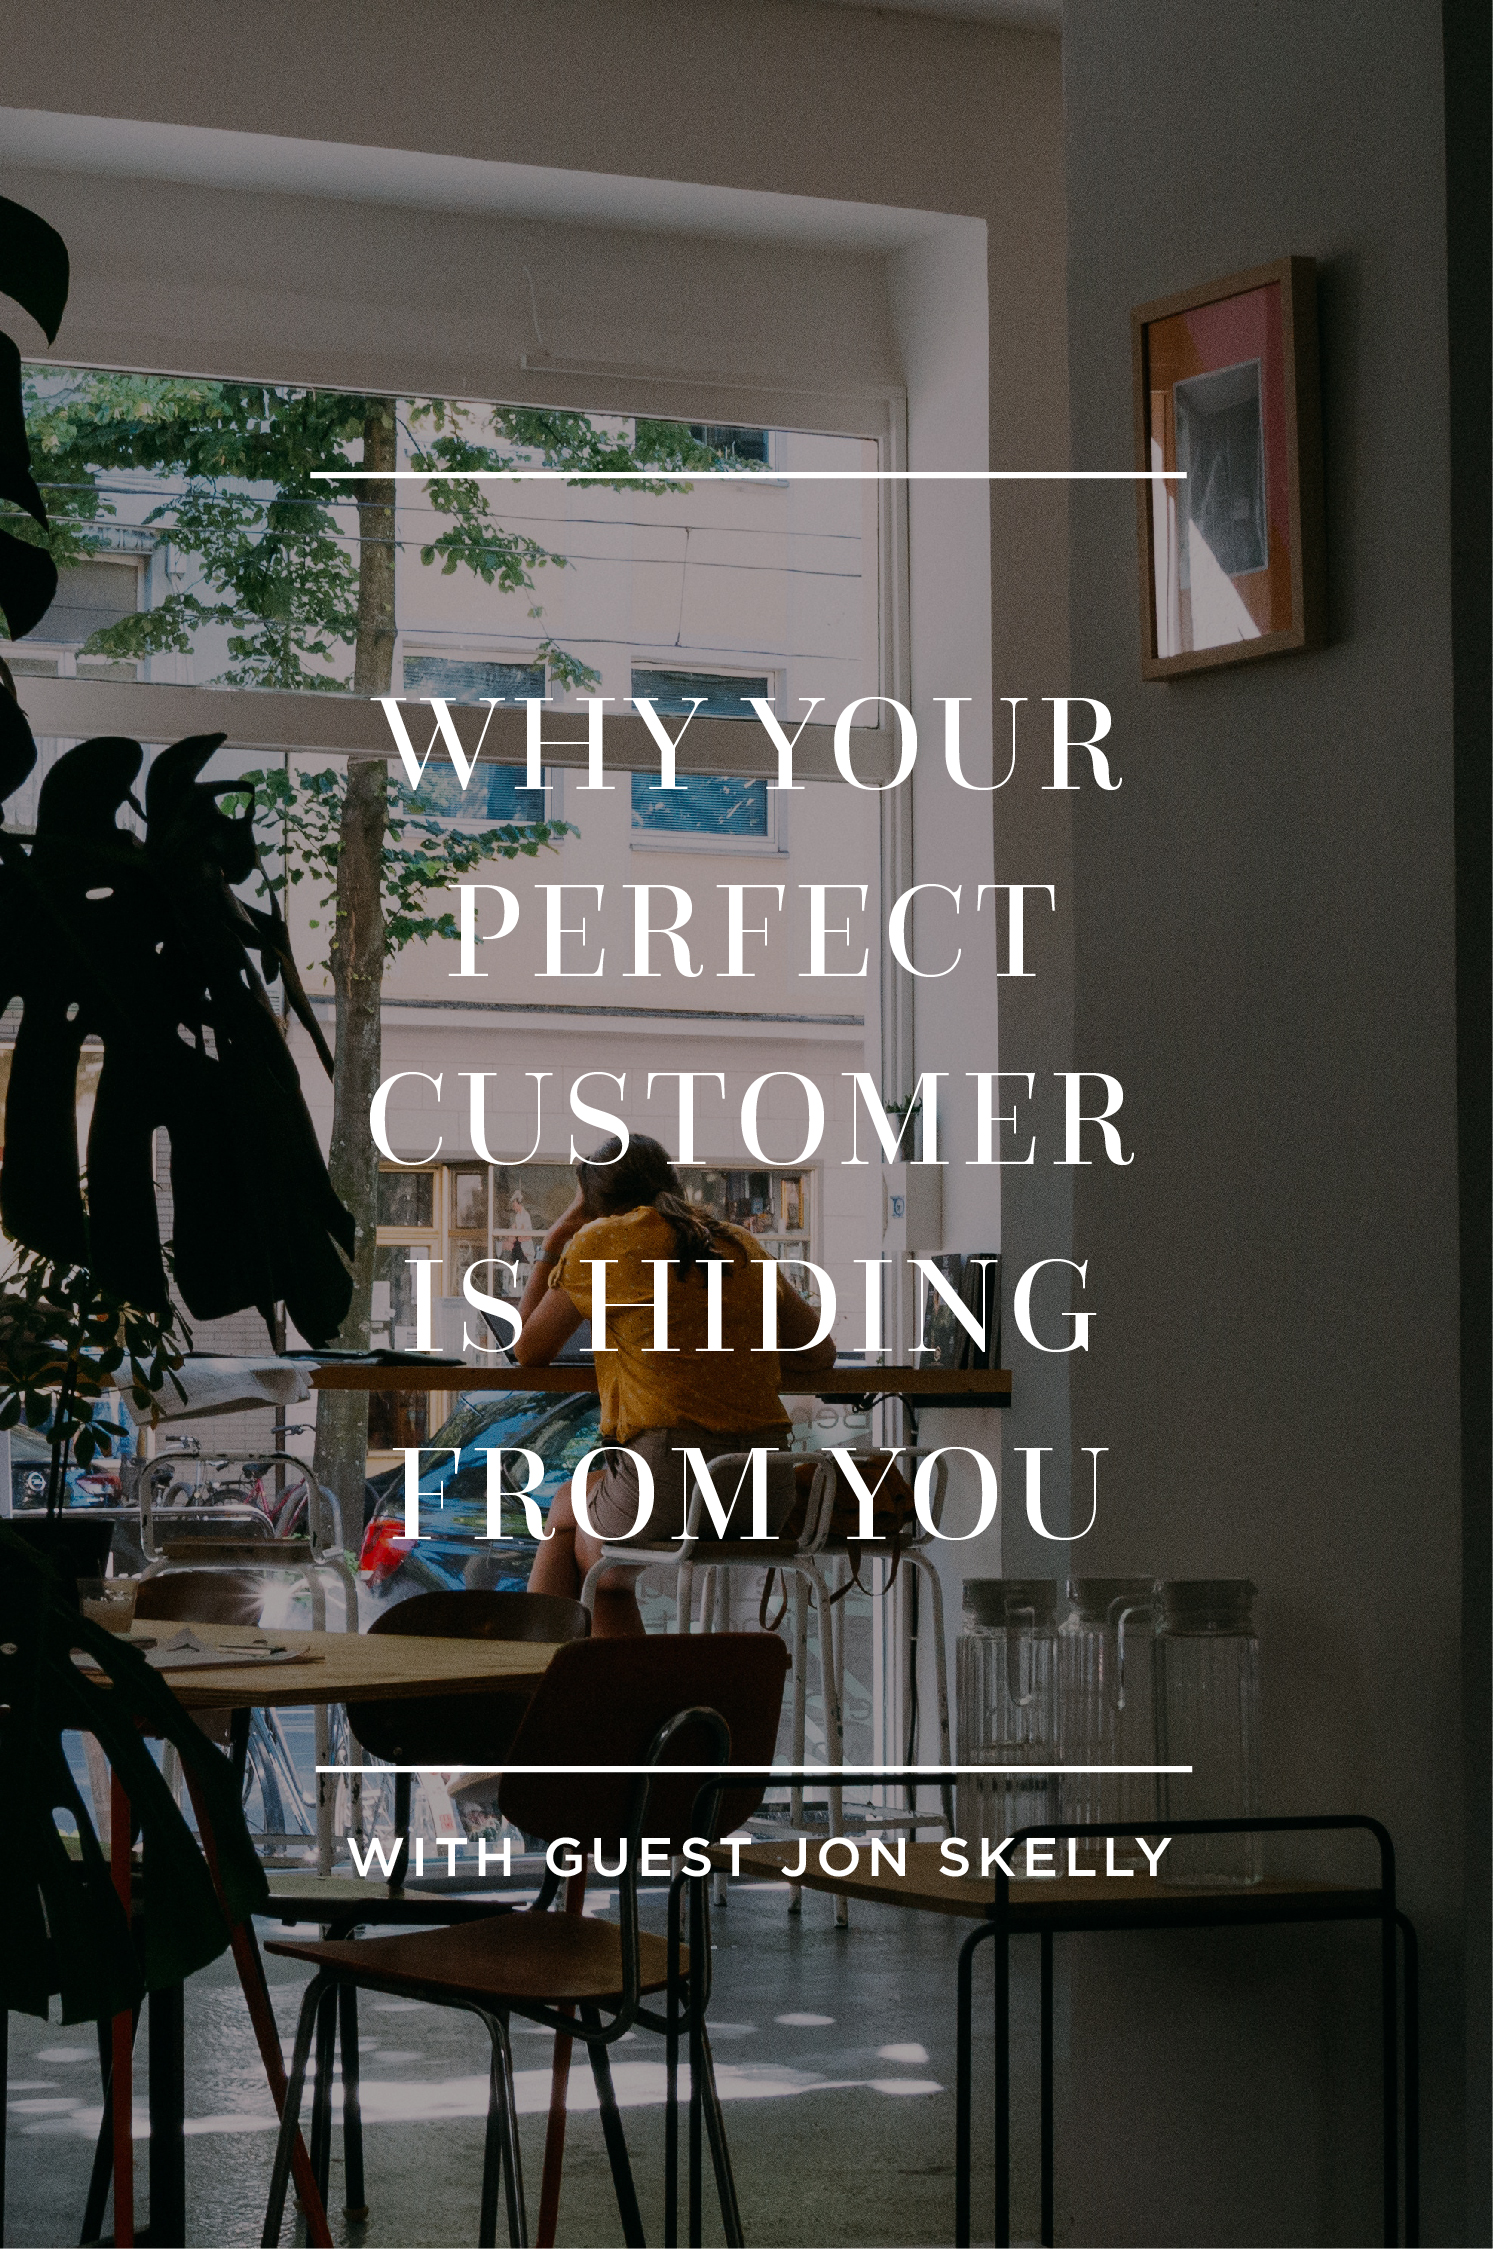 Blogpost-Why your perfect customer is hiding from you-Hayley Bigham Designs-01.jpg